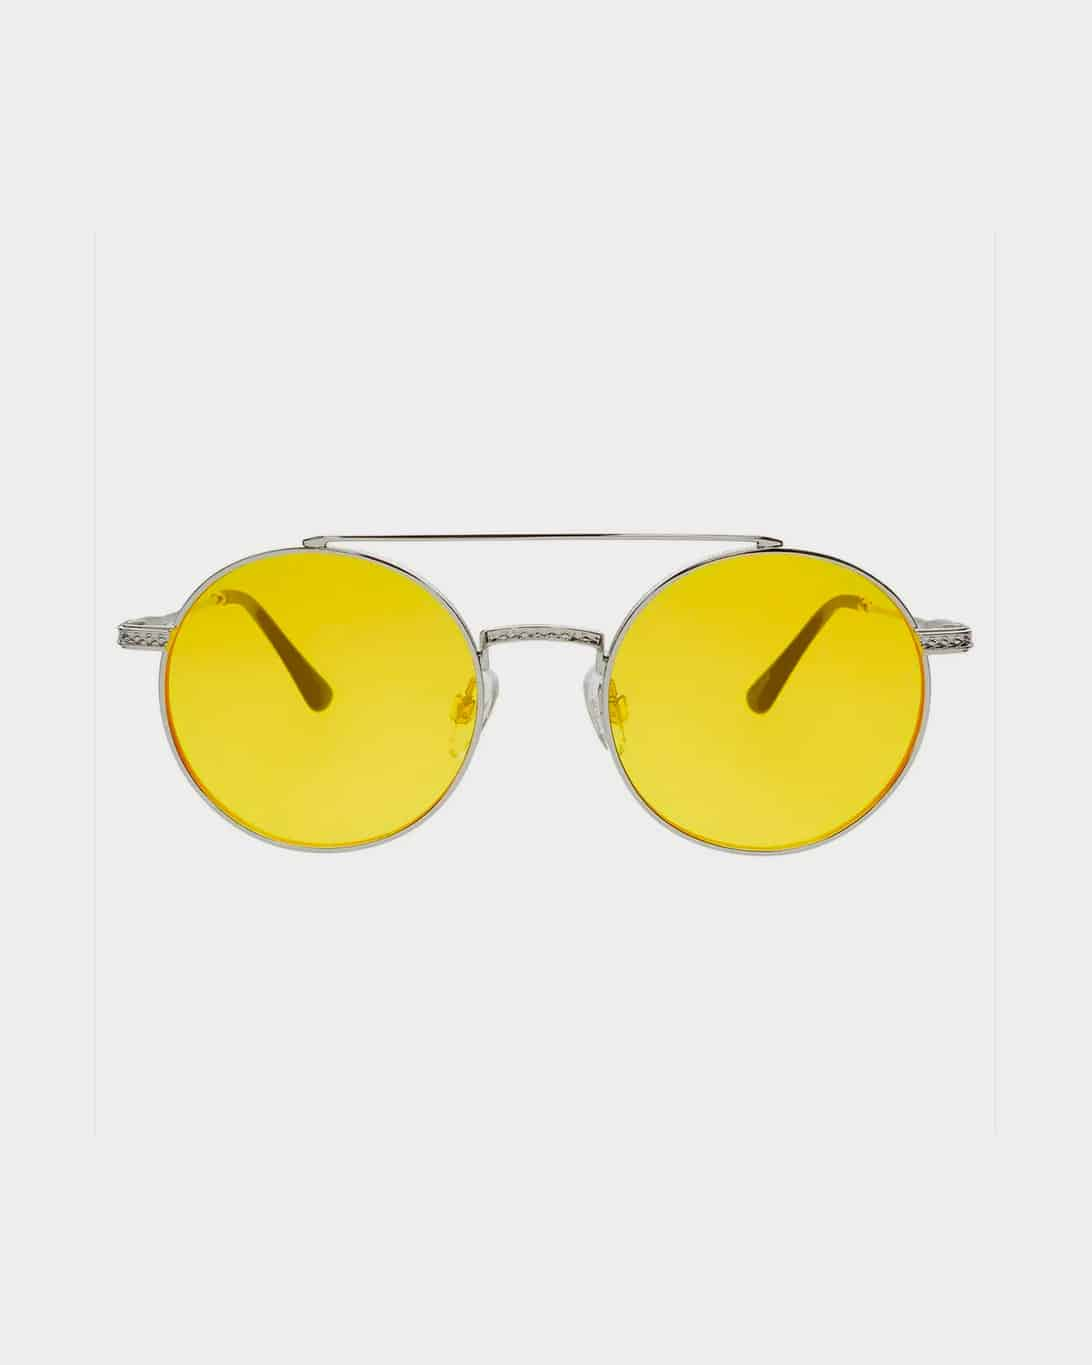 Silver framed sunglasses with yellow lenses